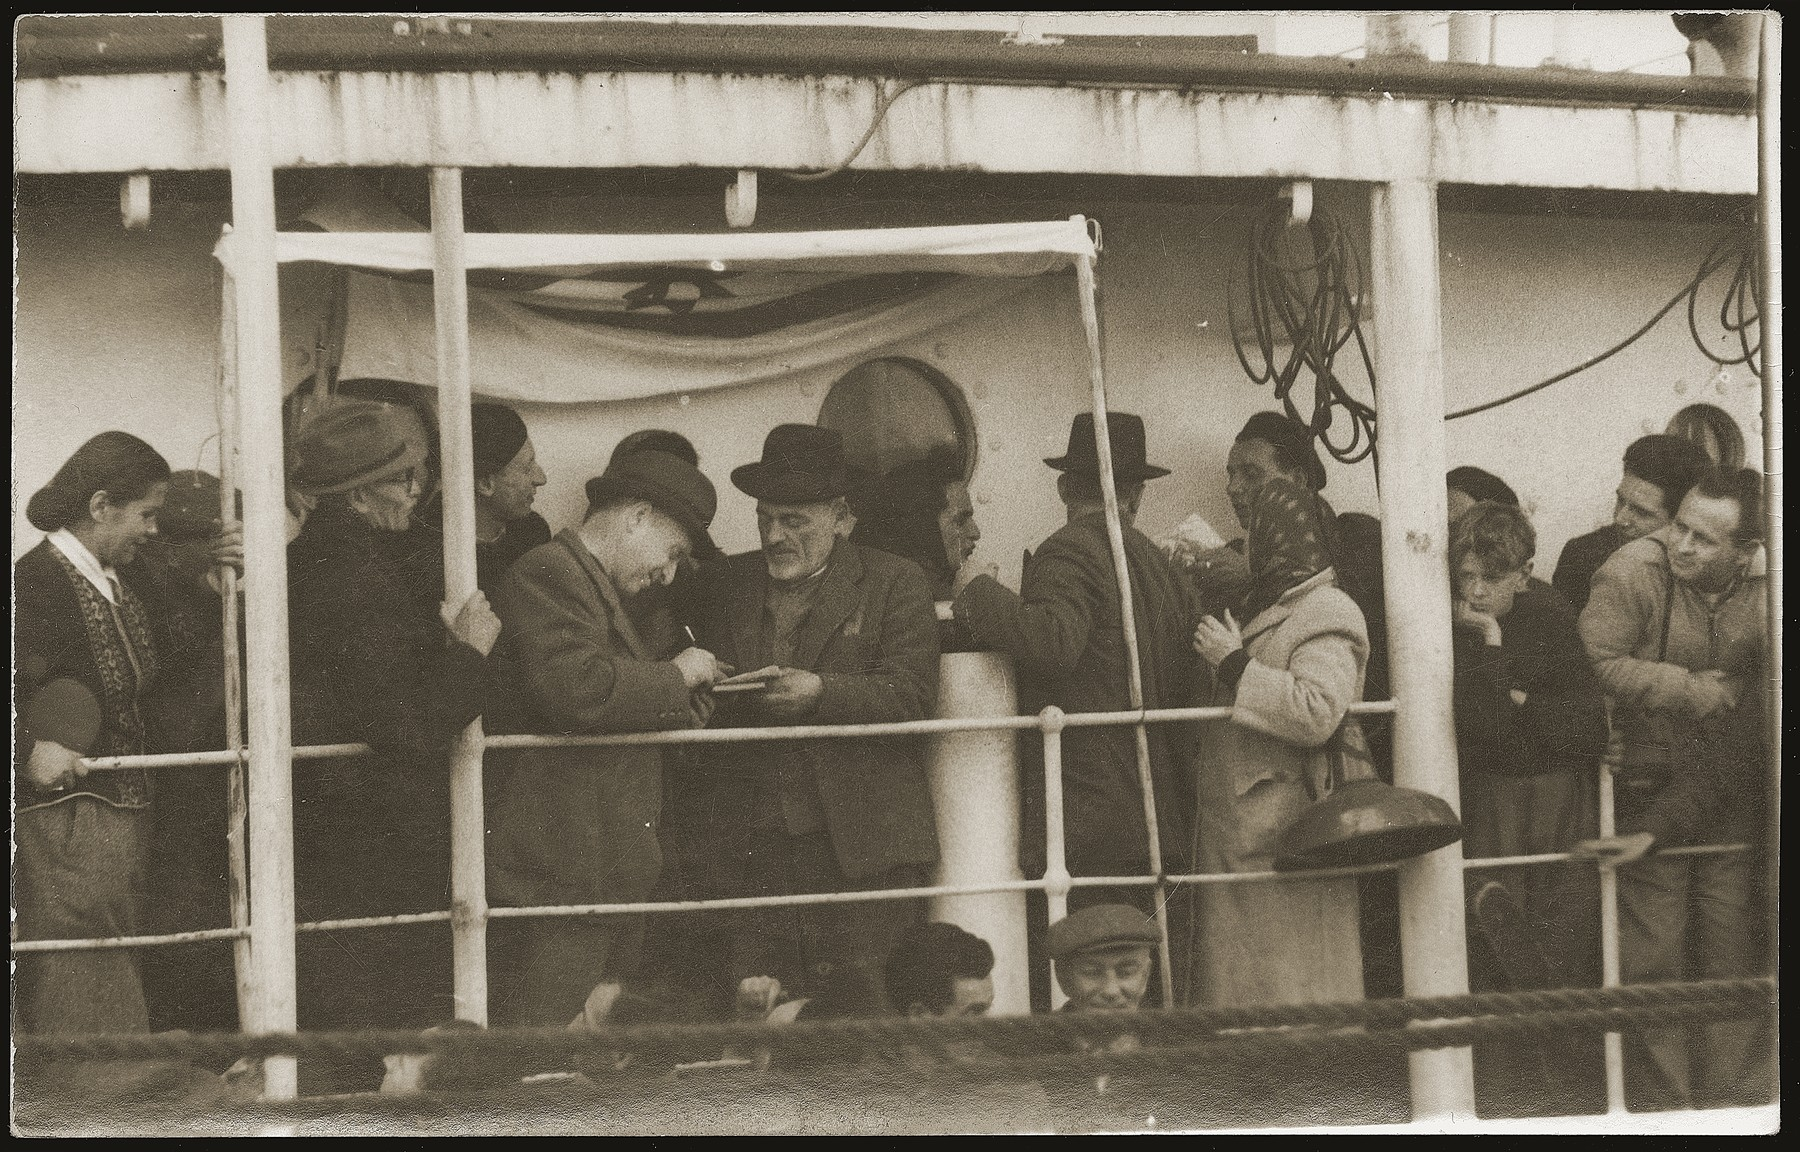 A witness signs the ketubah [marriage contract] at the marriage ceremony of a Yugoslavian-Jewish couple on board the SS Kefalos, sailing from Bakar to Israel.